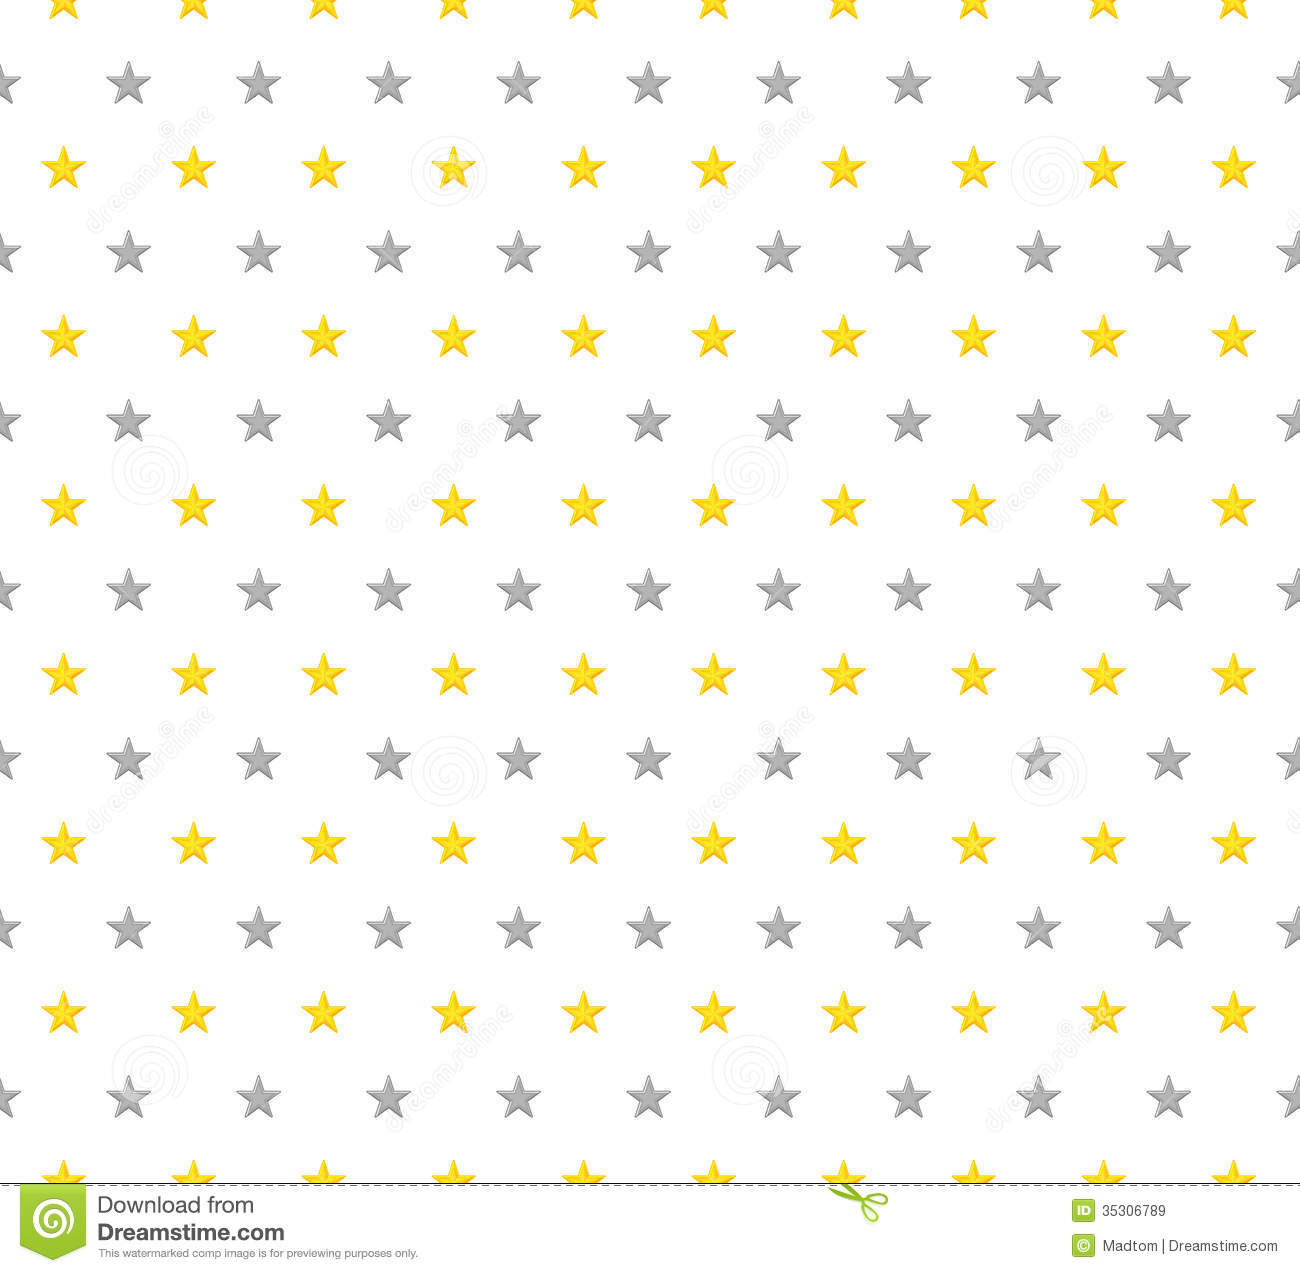 The abstract background made out of yellow and grey stars.